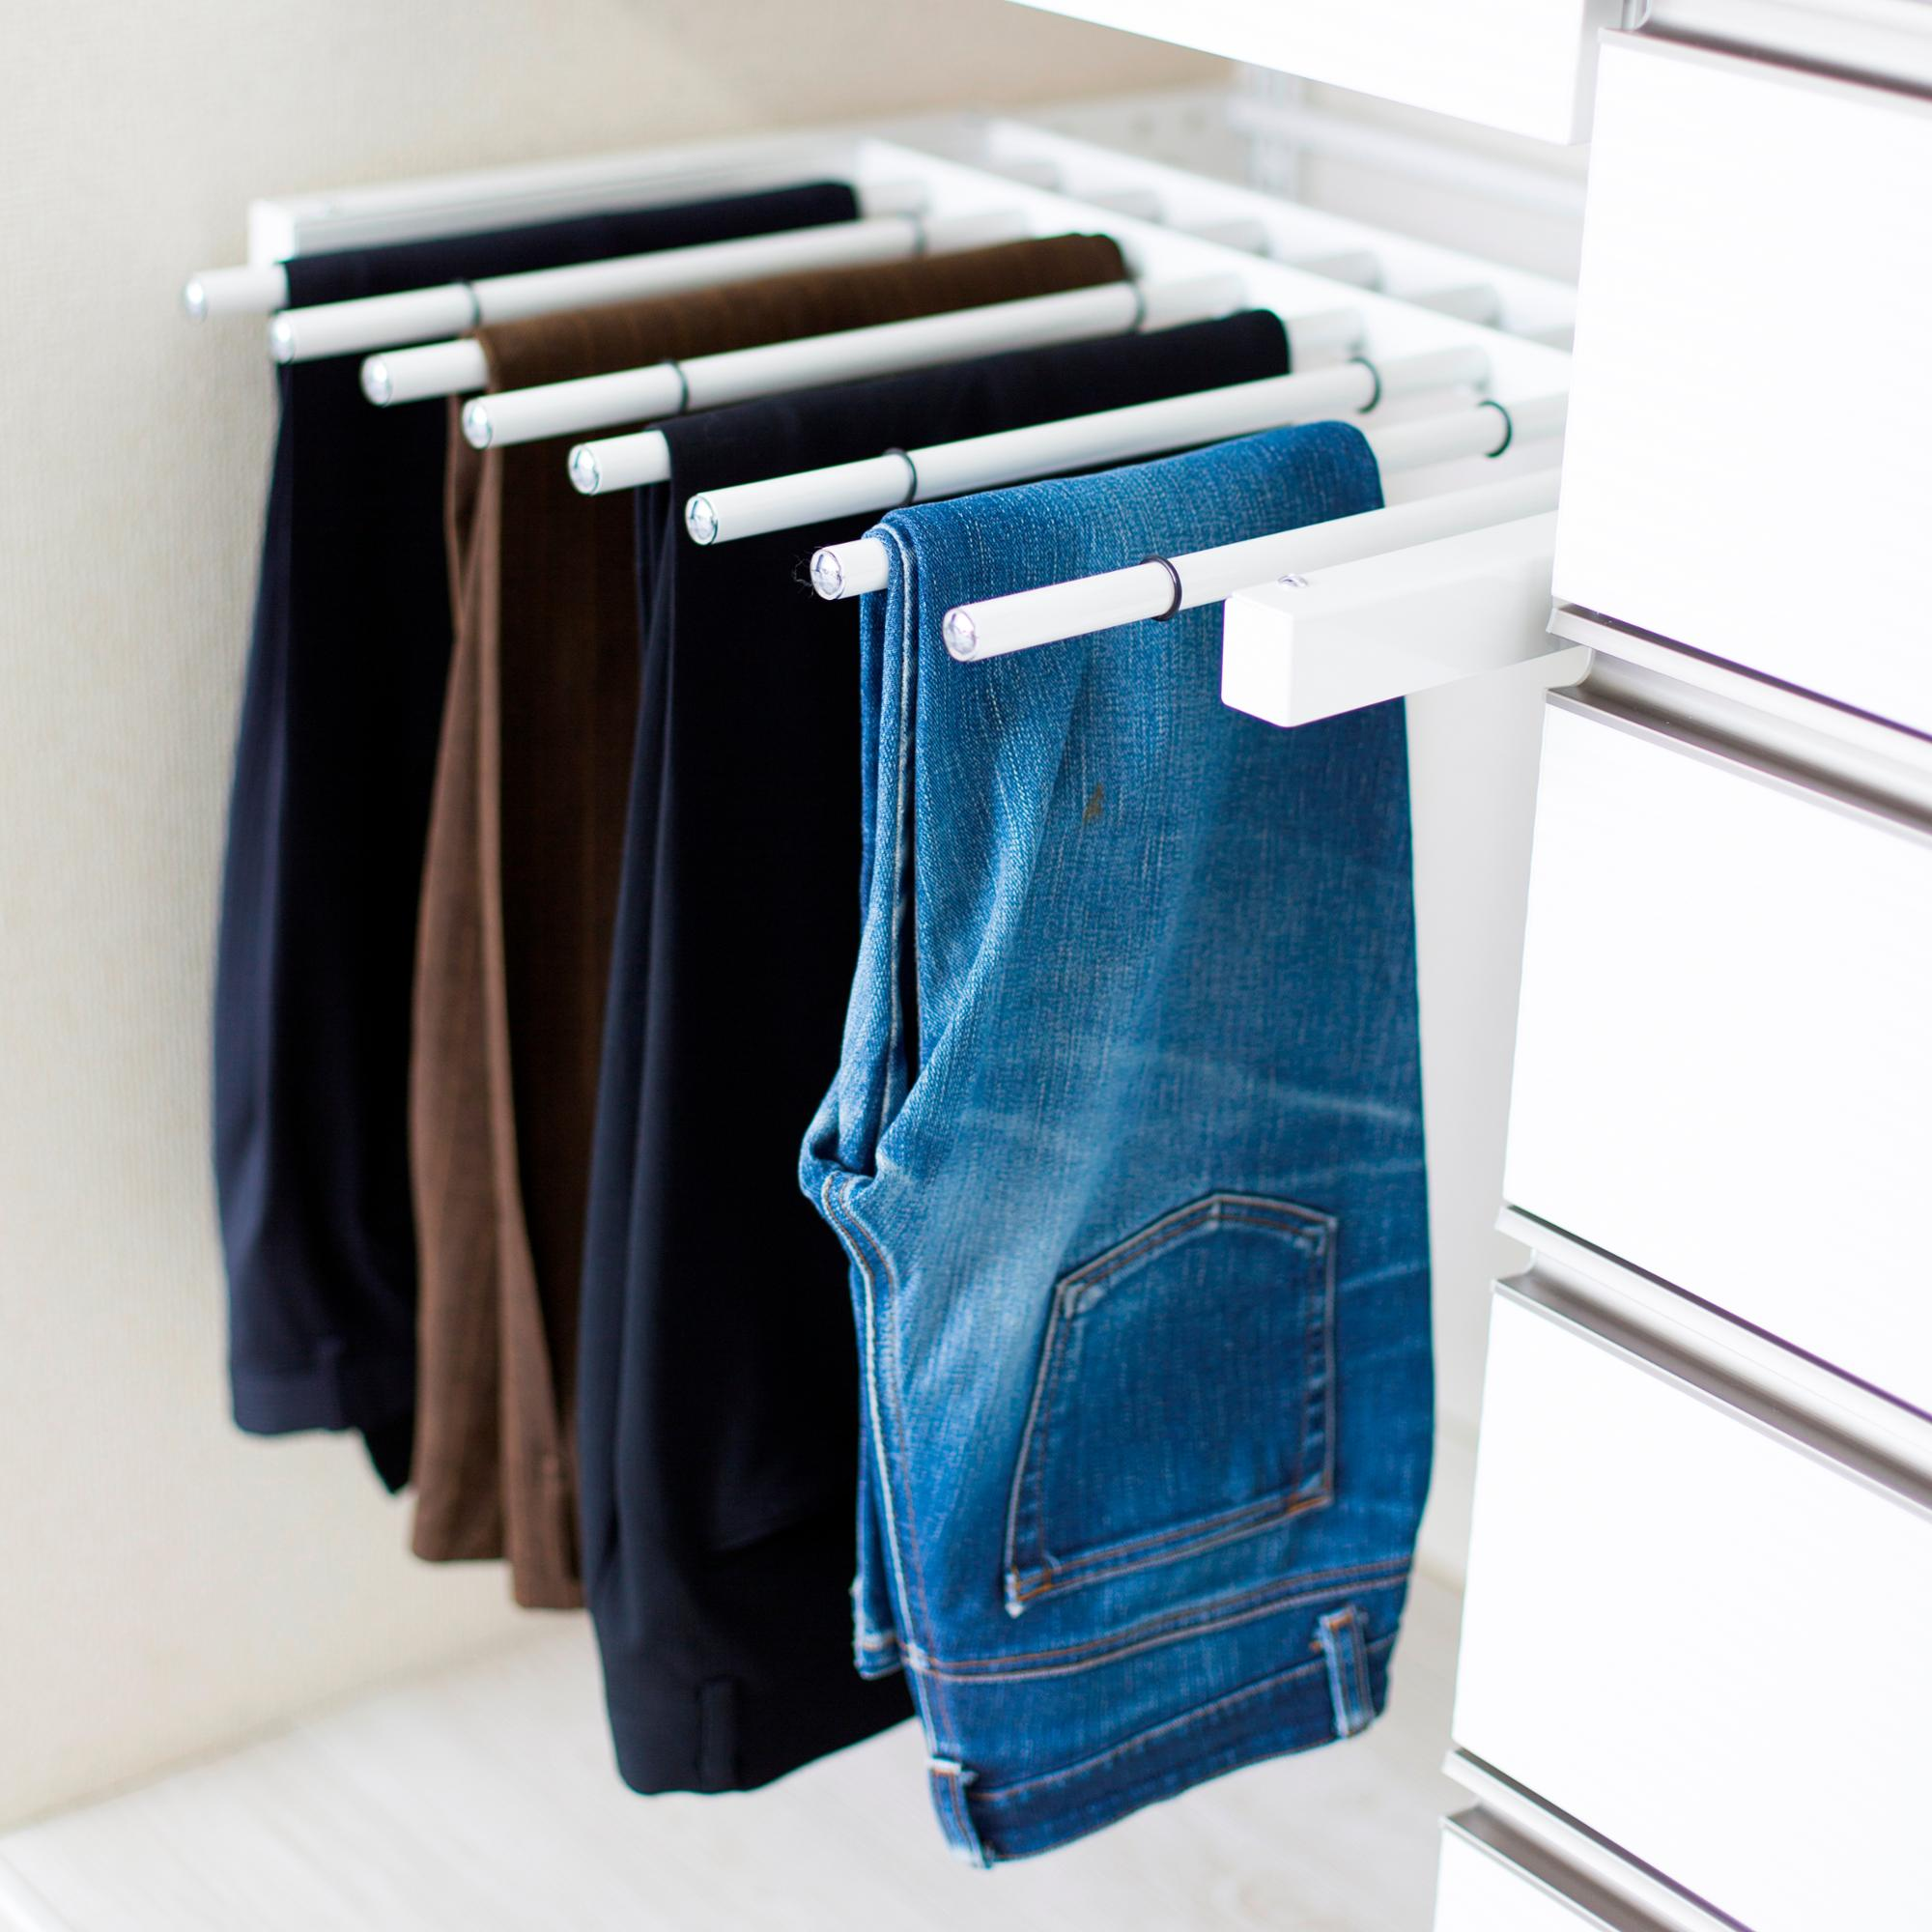 products metal manufacturers storage hanger wardrobe shoes meifeng suppliers and fabric clothes rack customized